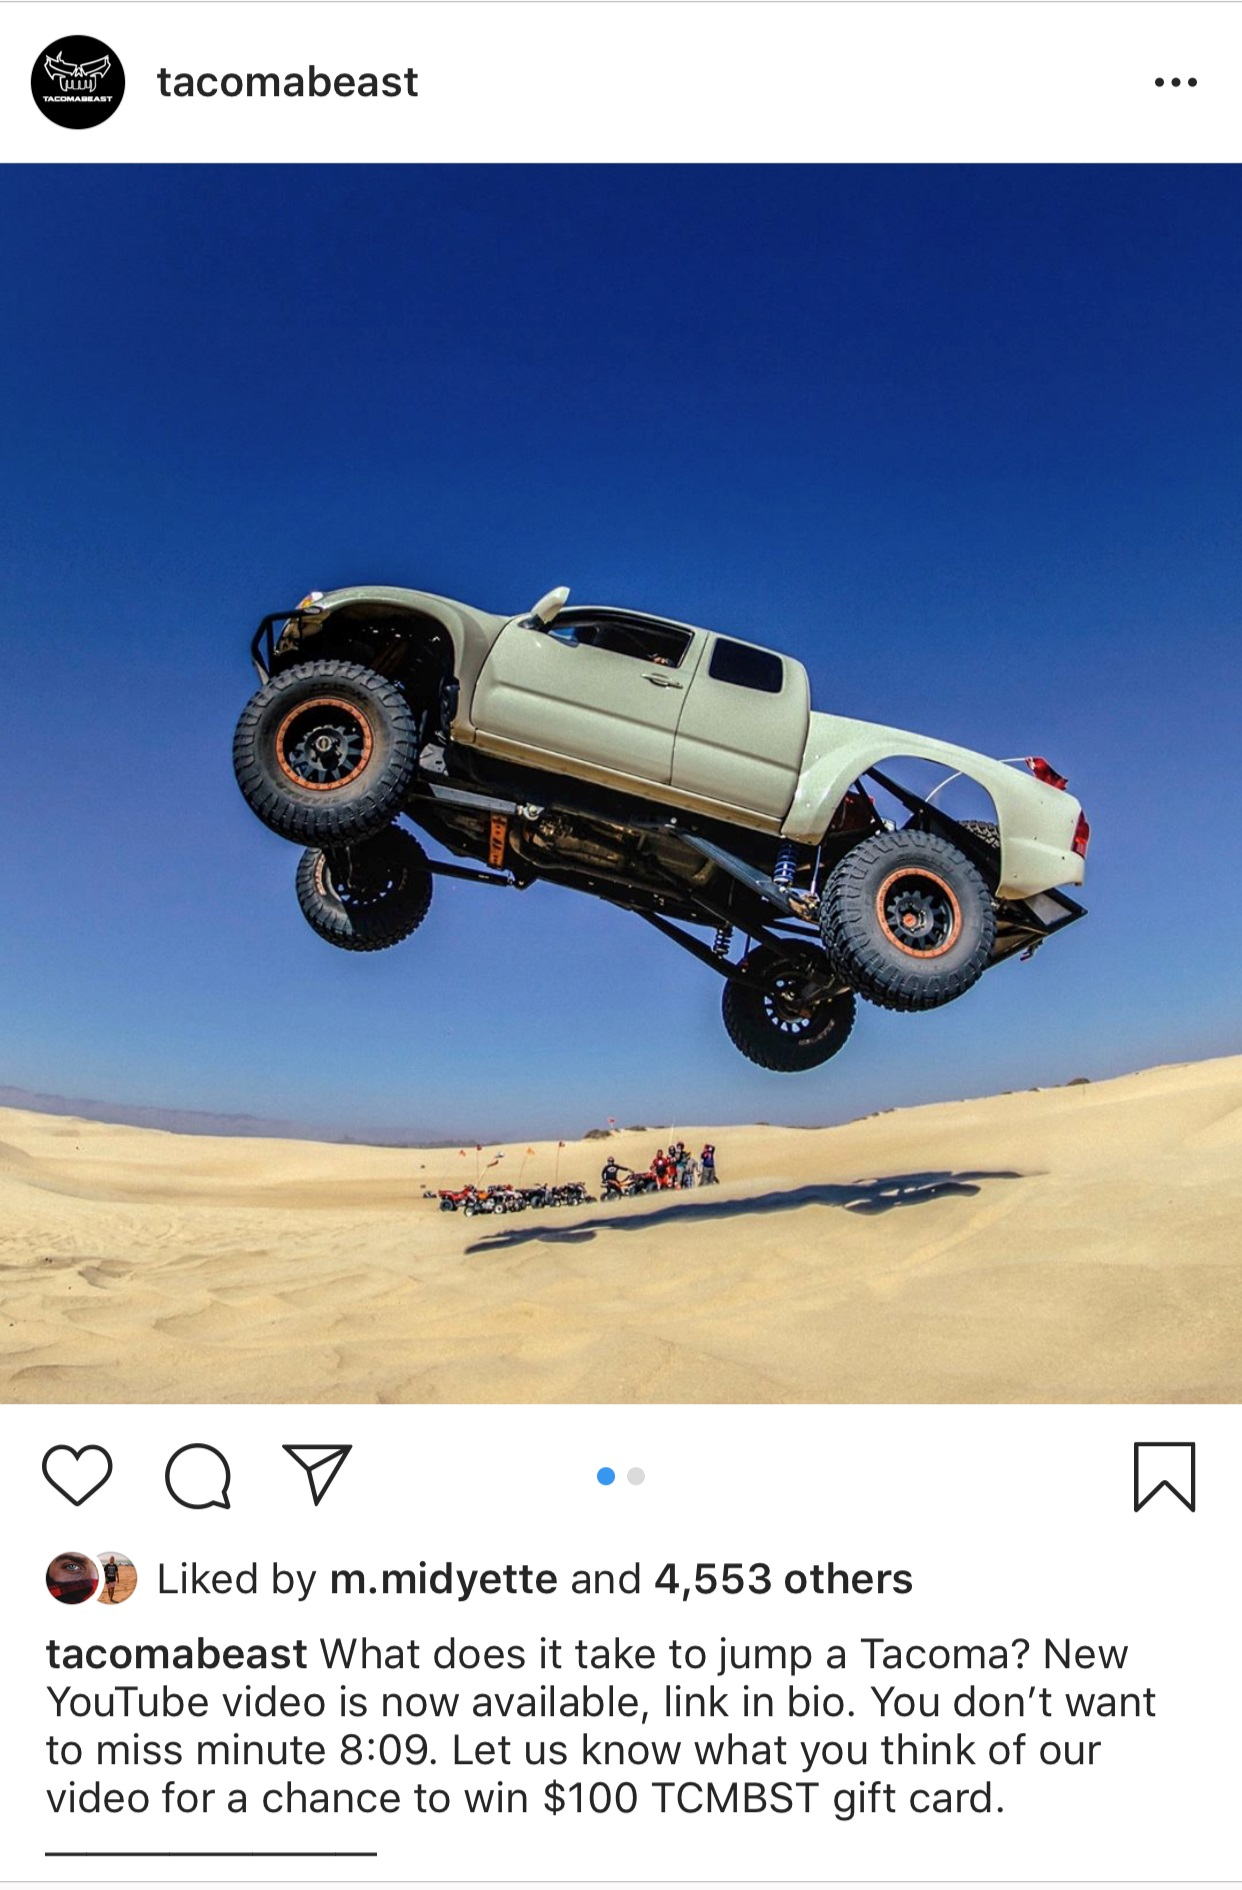 how to launch a tacoma!